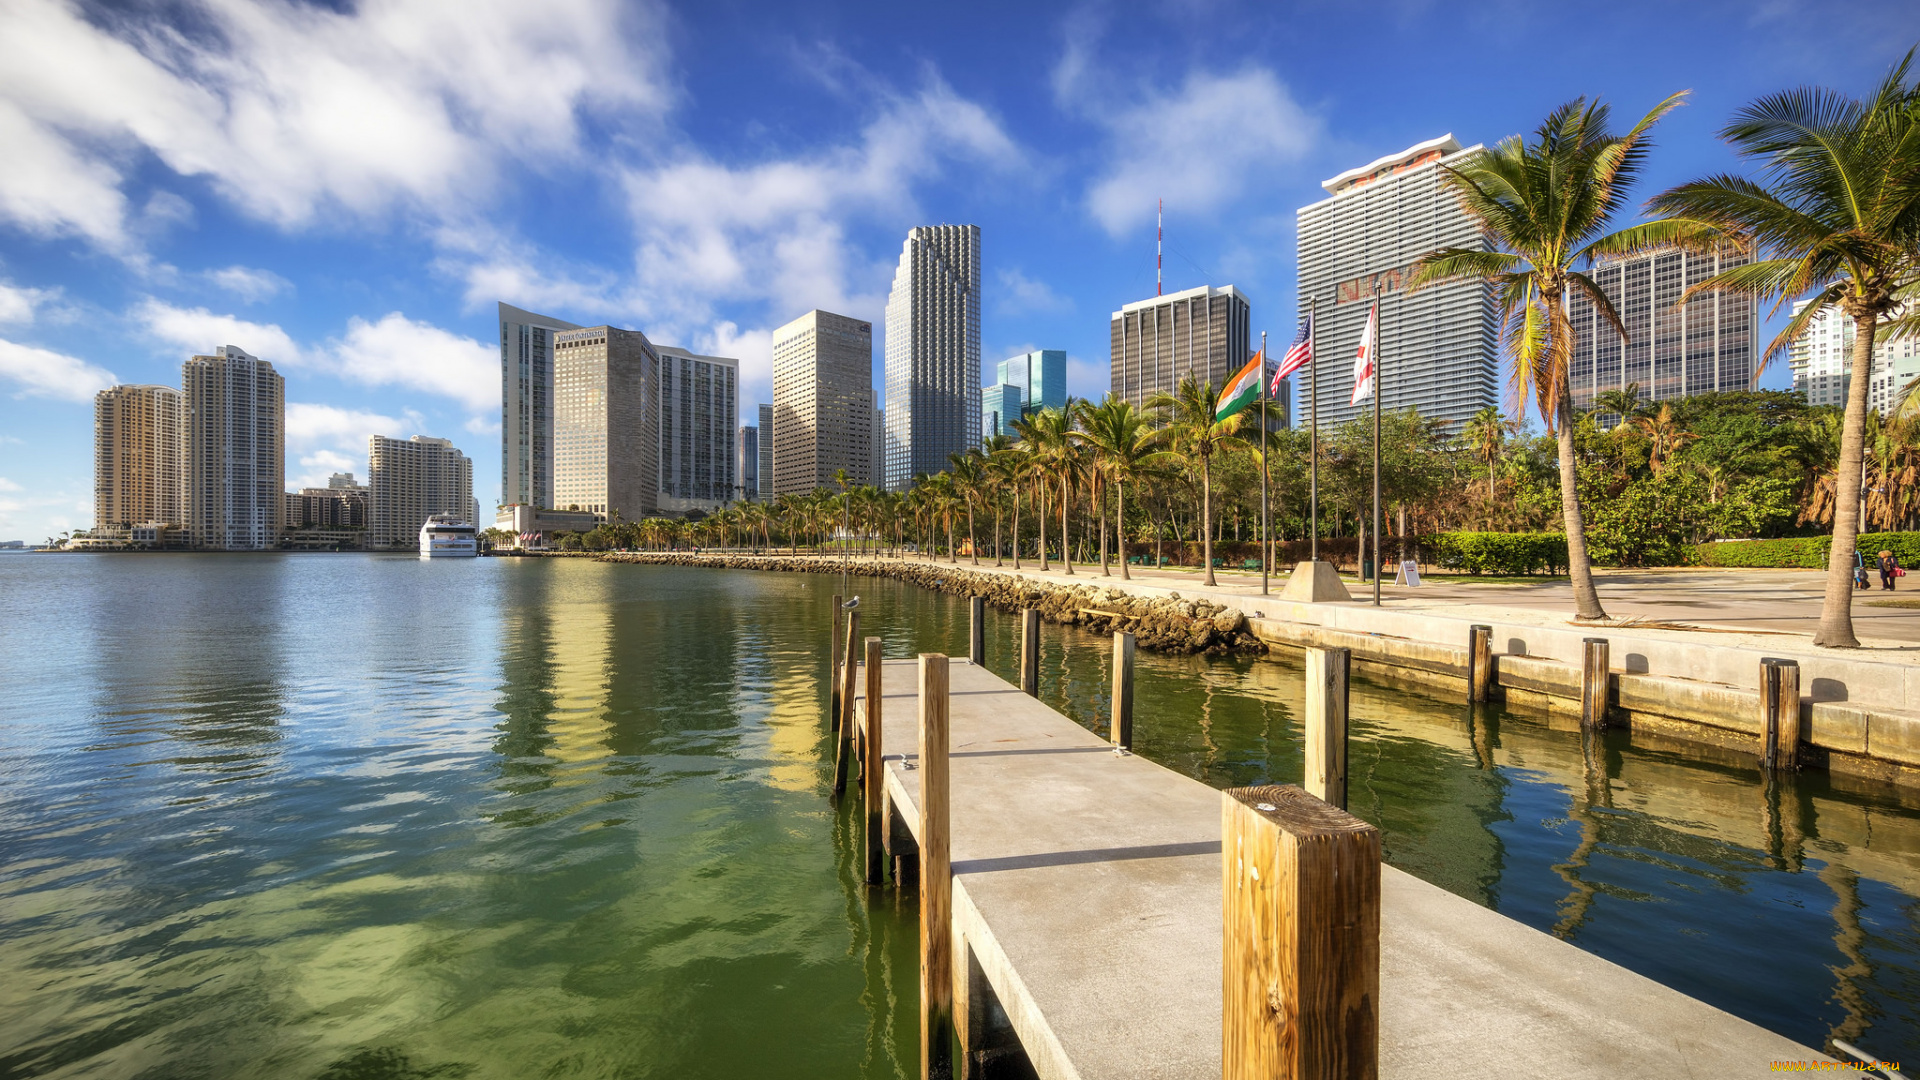 the city of miami of florida essay Miami beach, florida - it is america's riviera a cosmopolitan city whose residents are as diverse as its visitors over 7 miles of beaches 3 golf courses 20 parks.